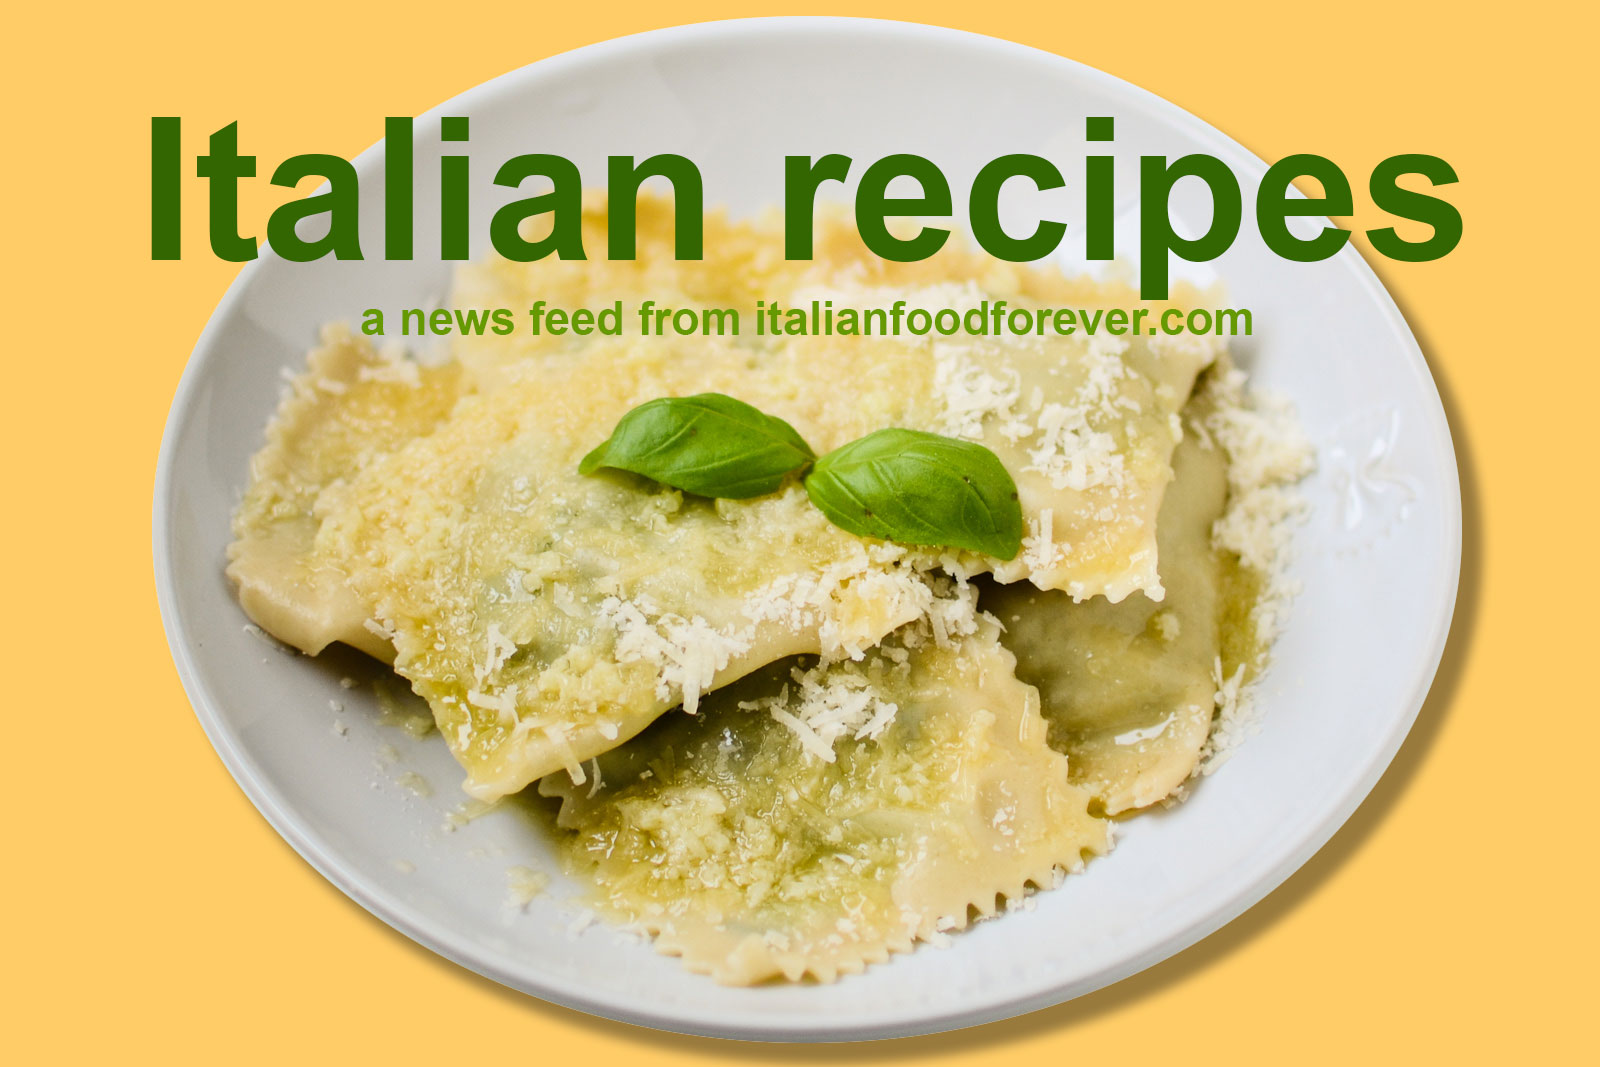 Italian recipes from italia mia for Italian meals